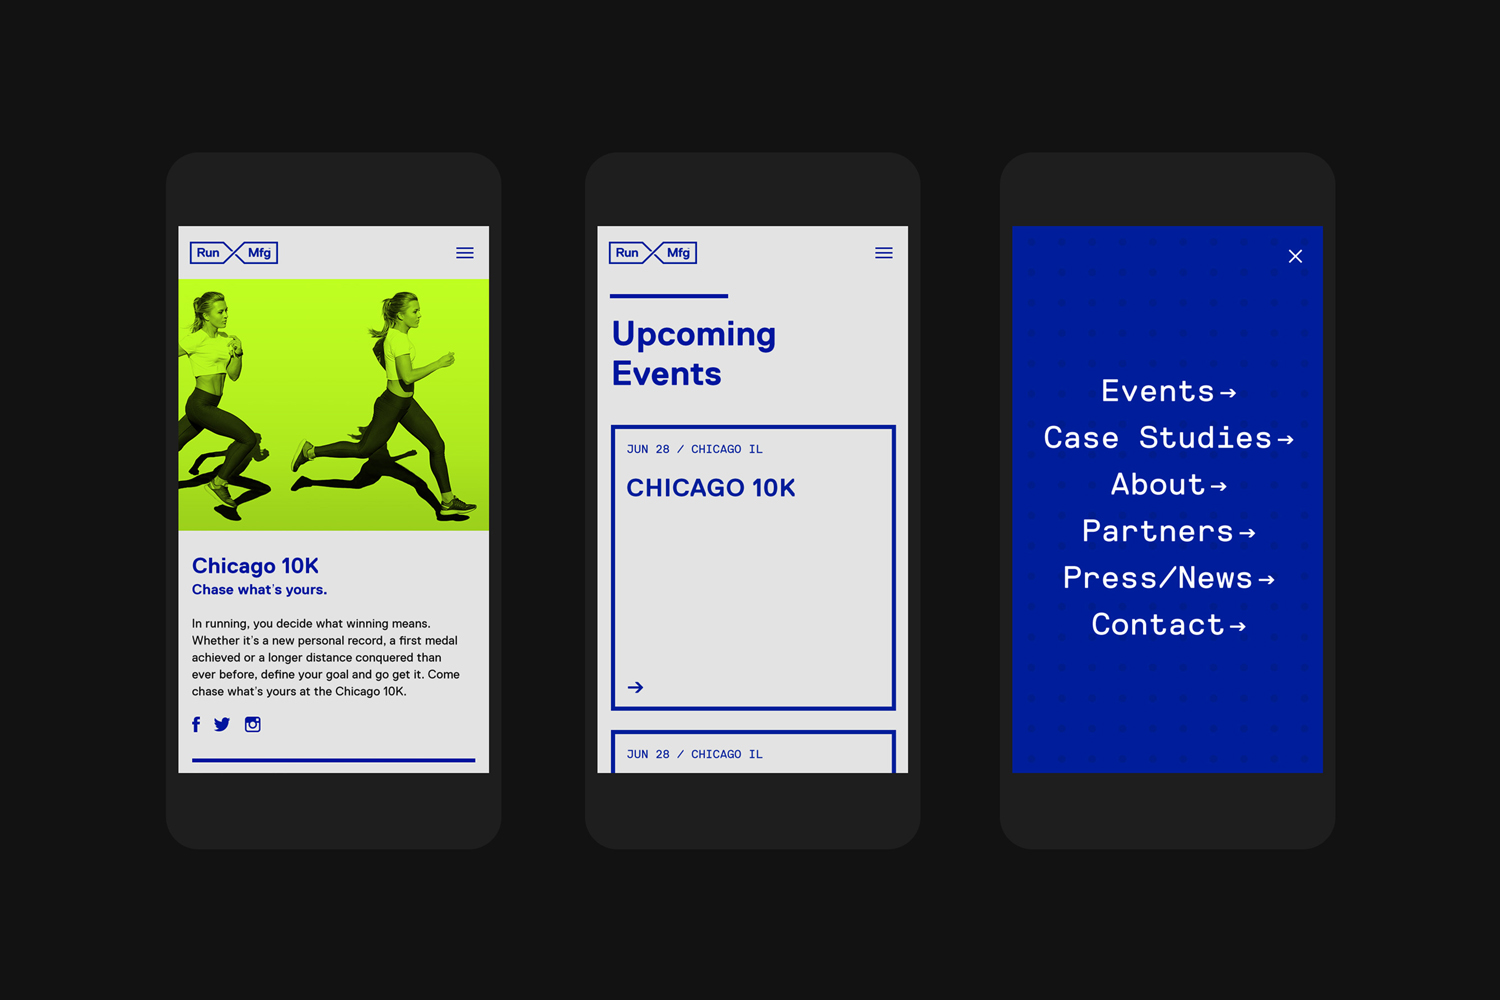 Brand identity and website by Perky Bros for Chicago-based independent race design and production company Run Mfg